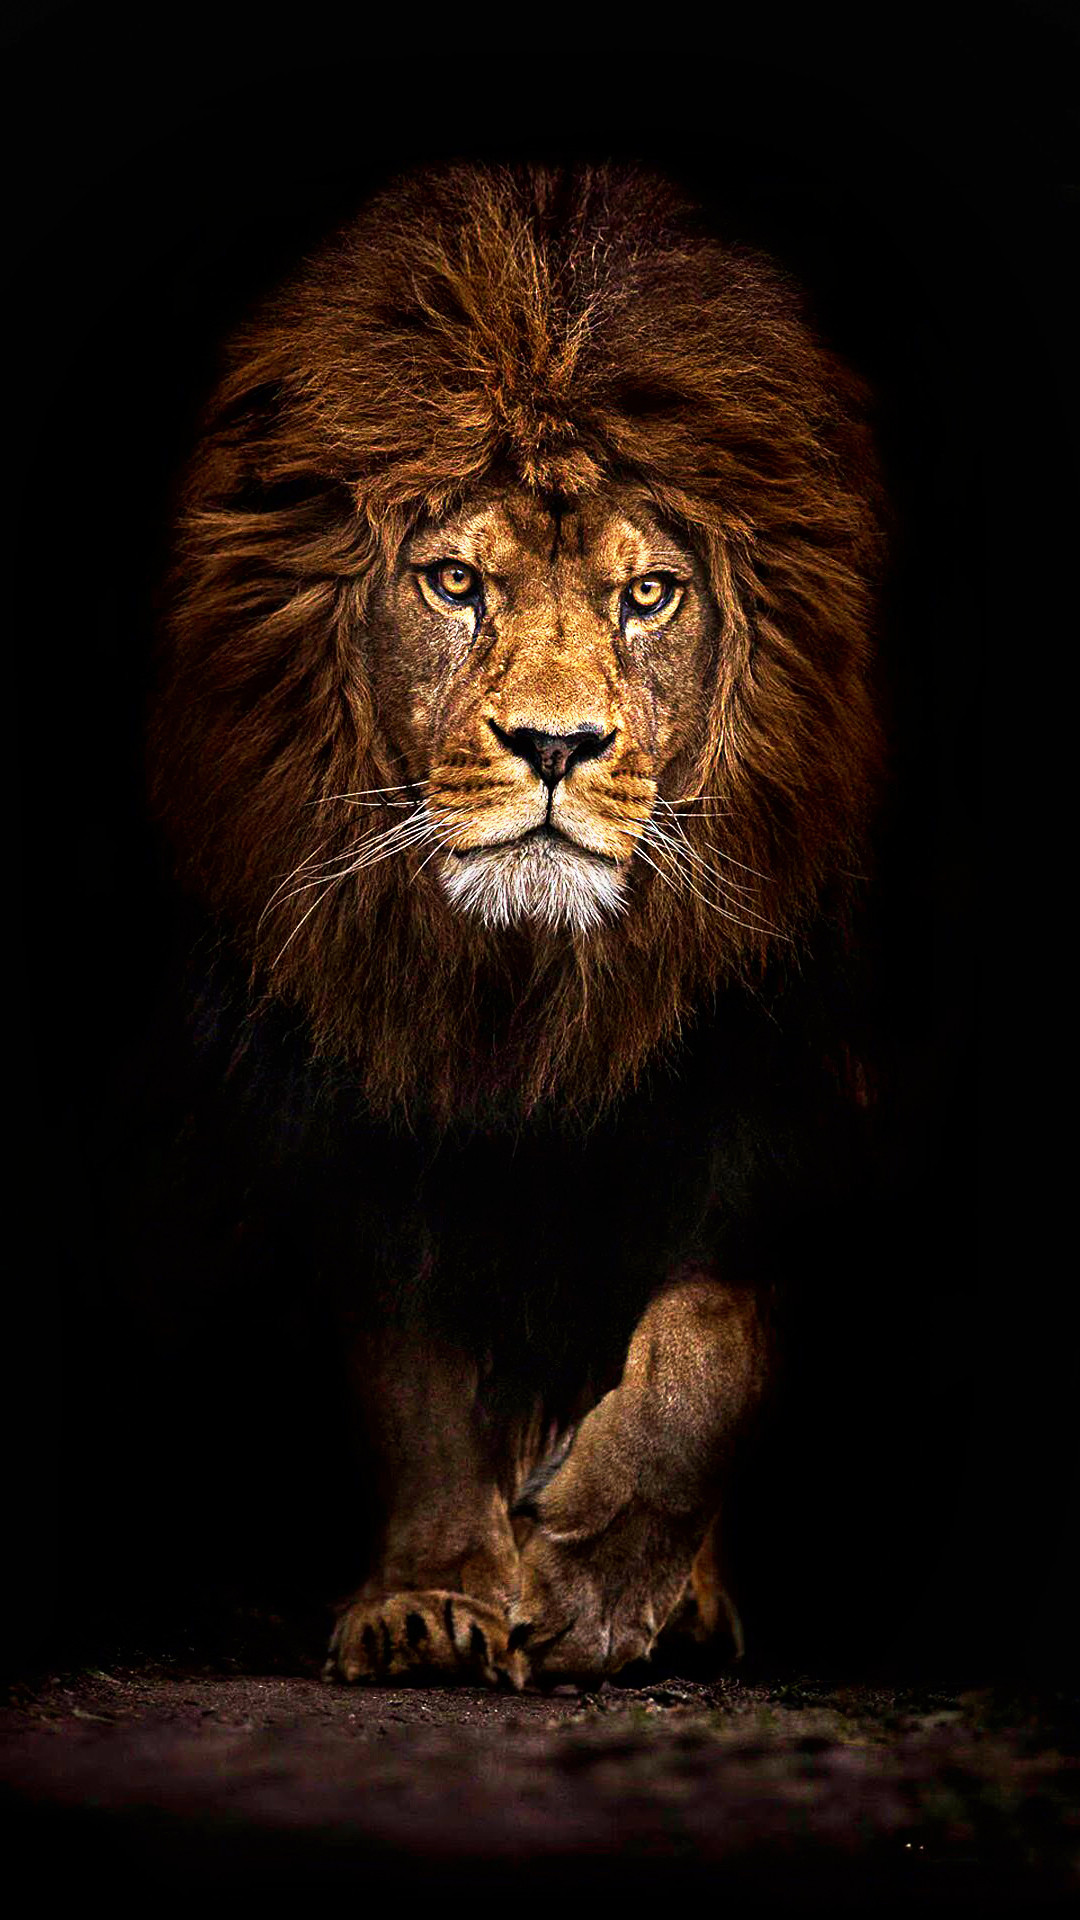 Wallpaper Lion Posted By Sarah Tremblay